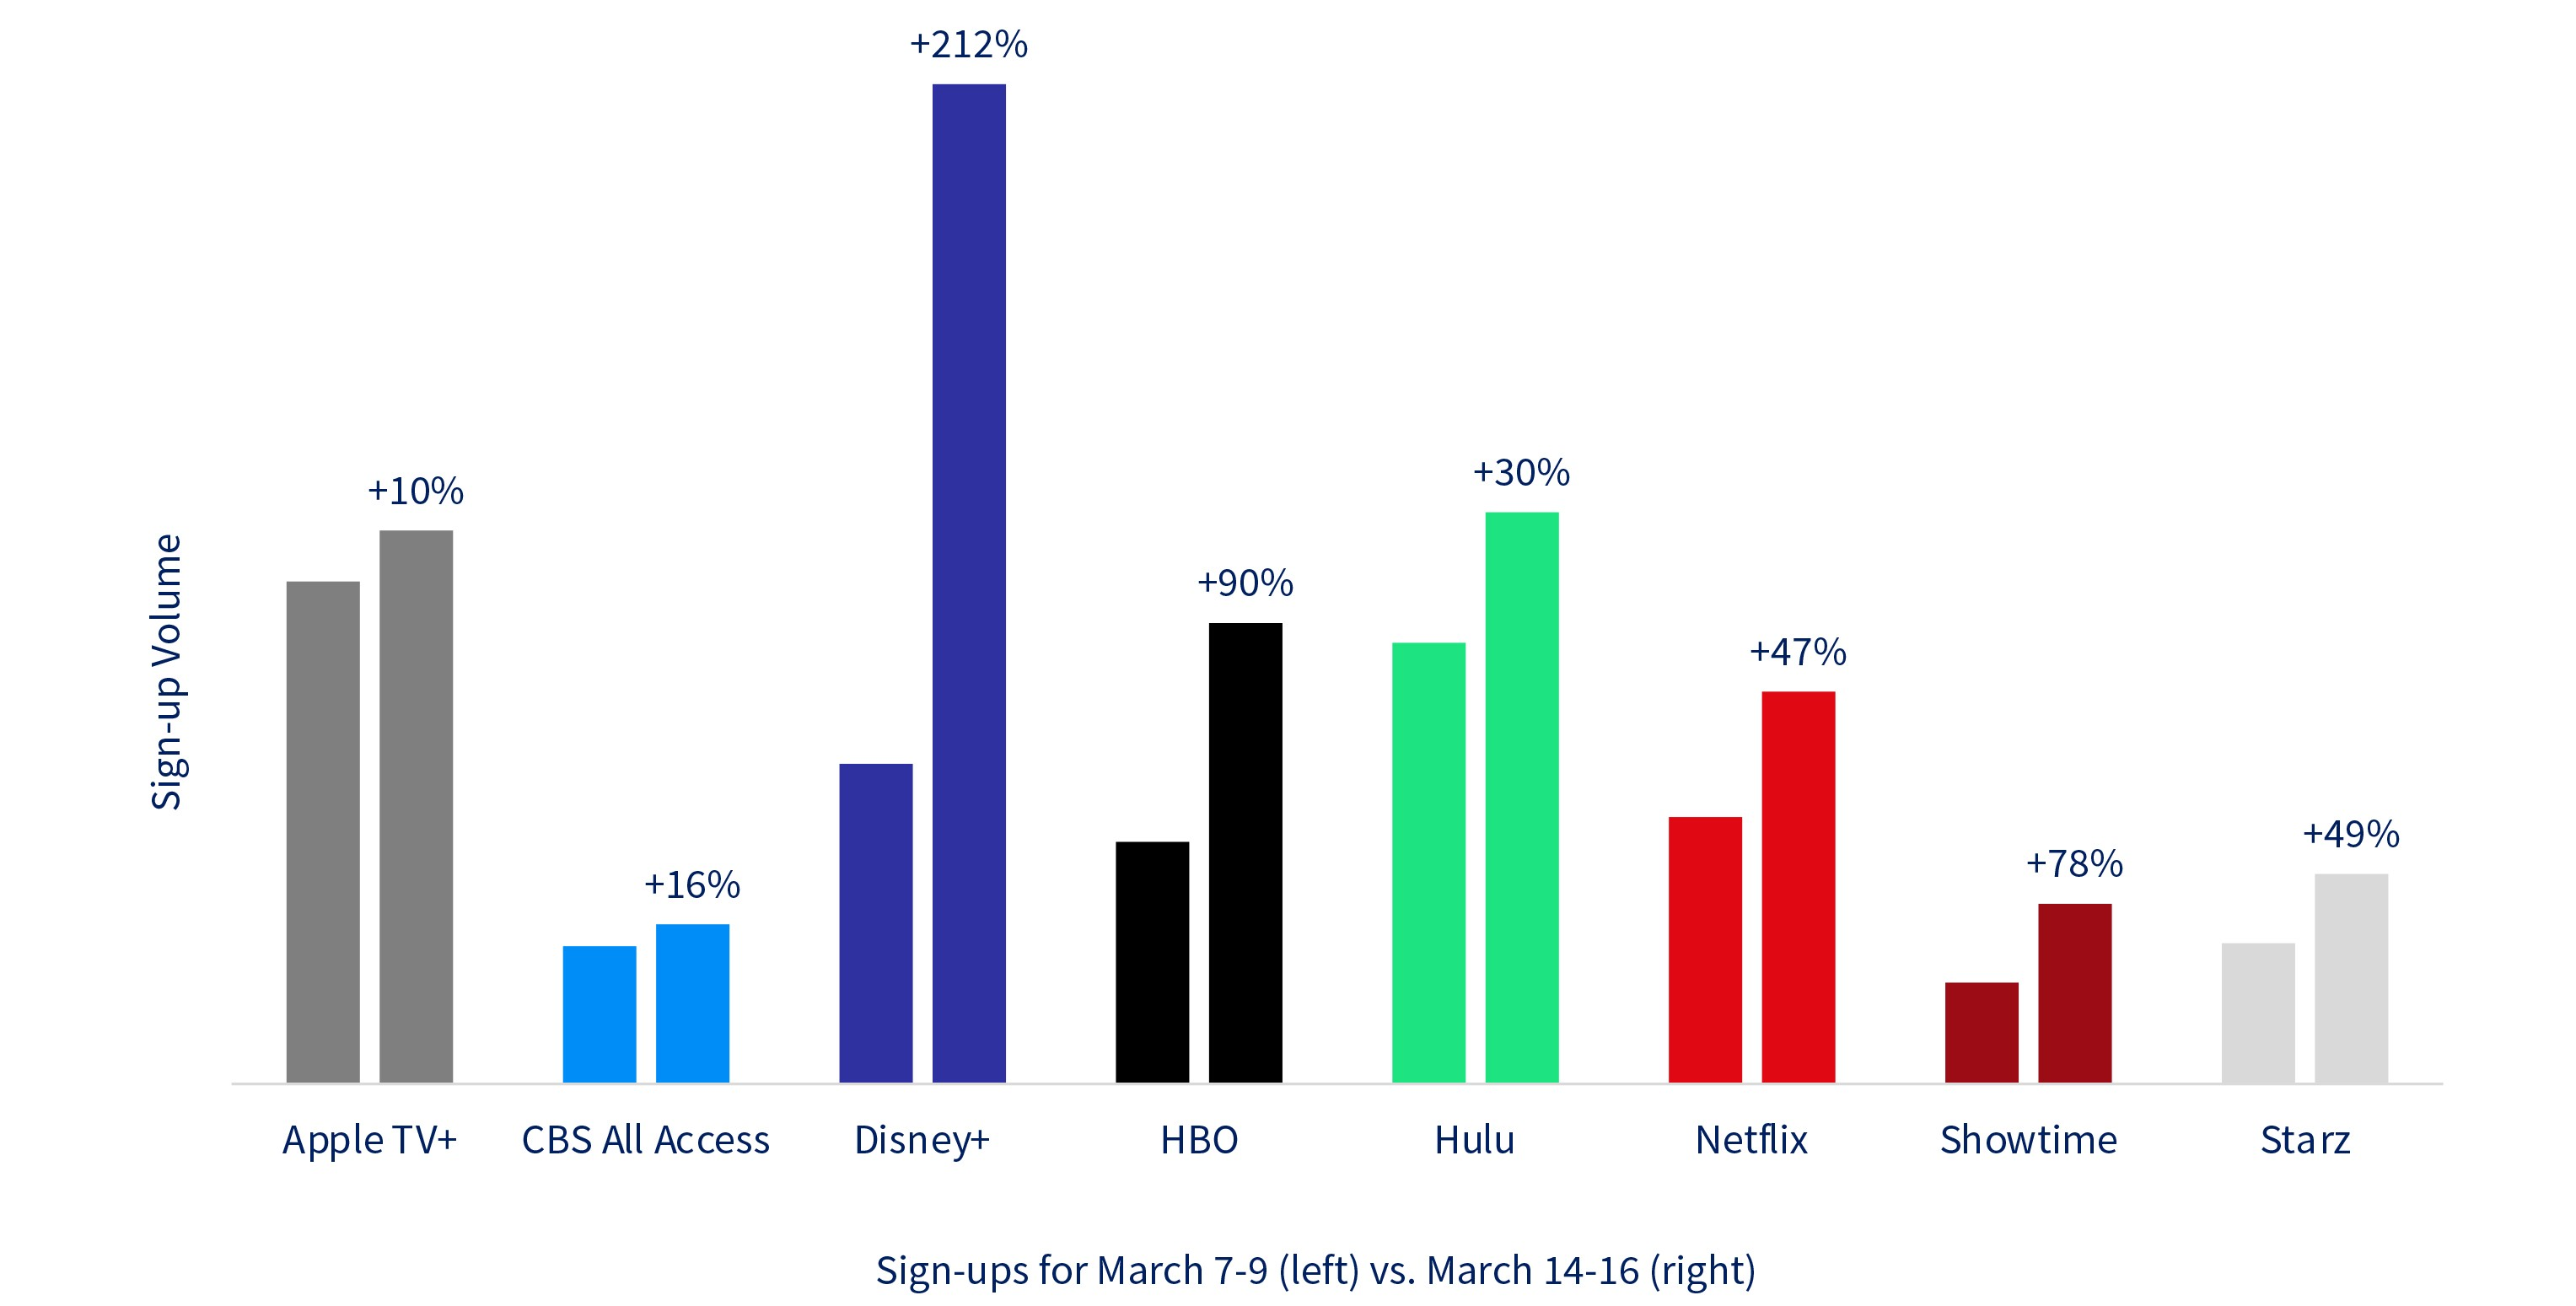 Increase in US Sign-up volume relative to the week prior: Disney+ increased by 212%.